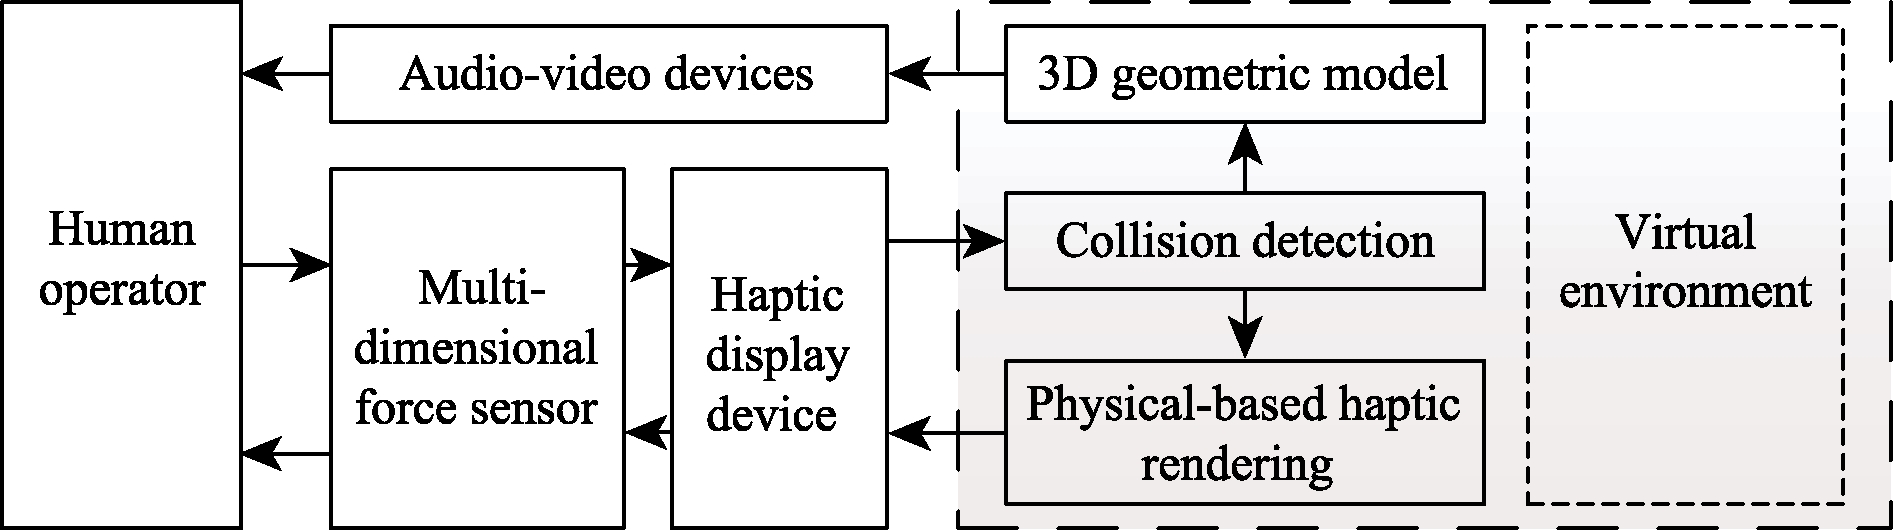 Multi-dimensional force sensor for haptic interaction: a review